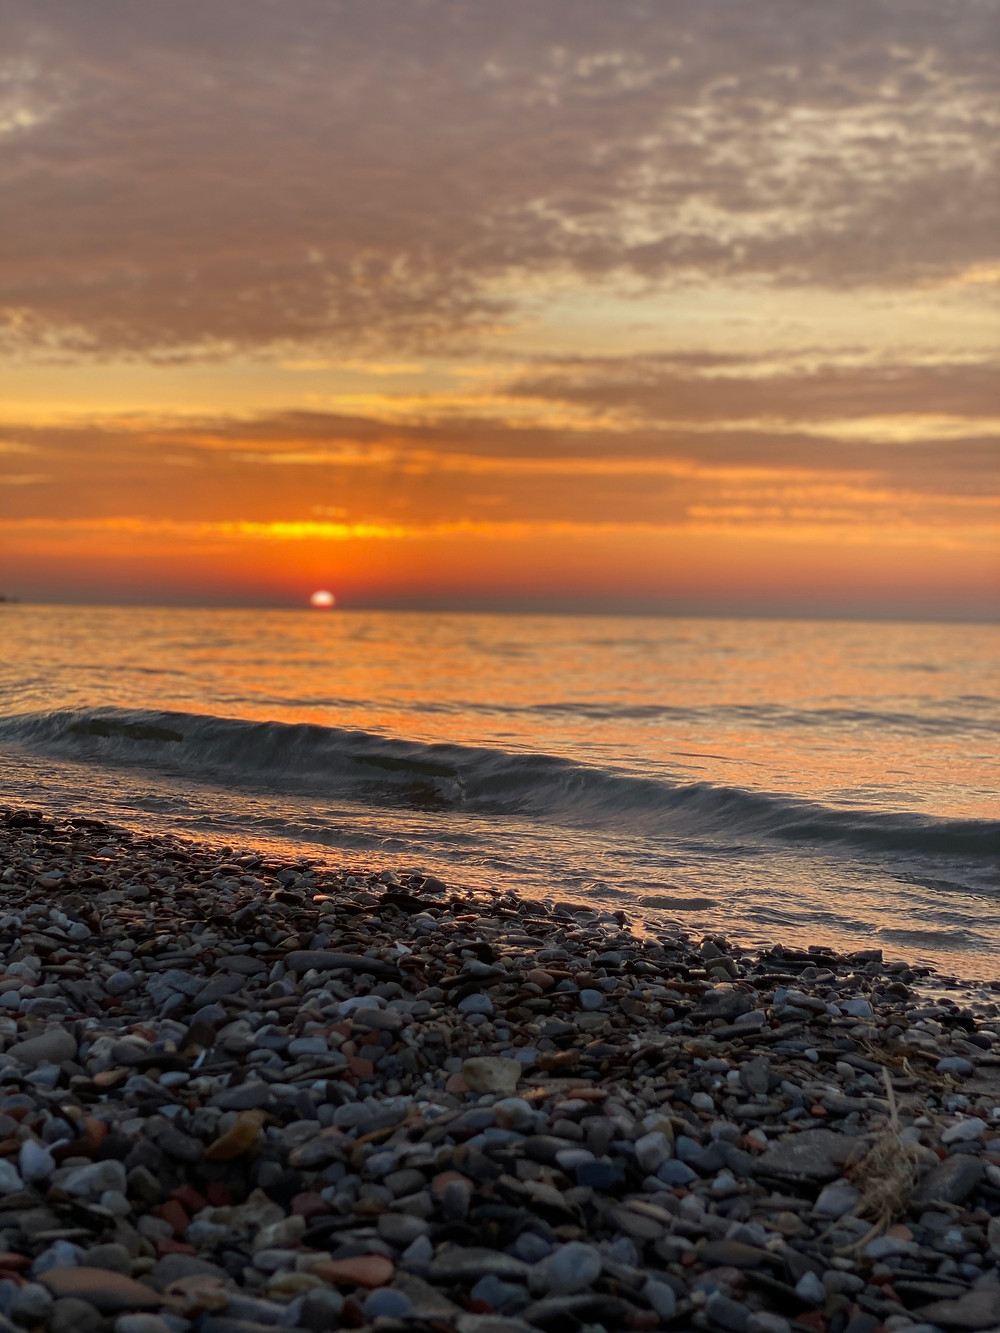 A beautiful orange sunset over ipperwash beach, stones and water.